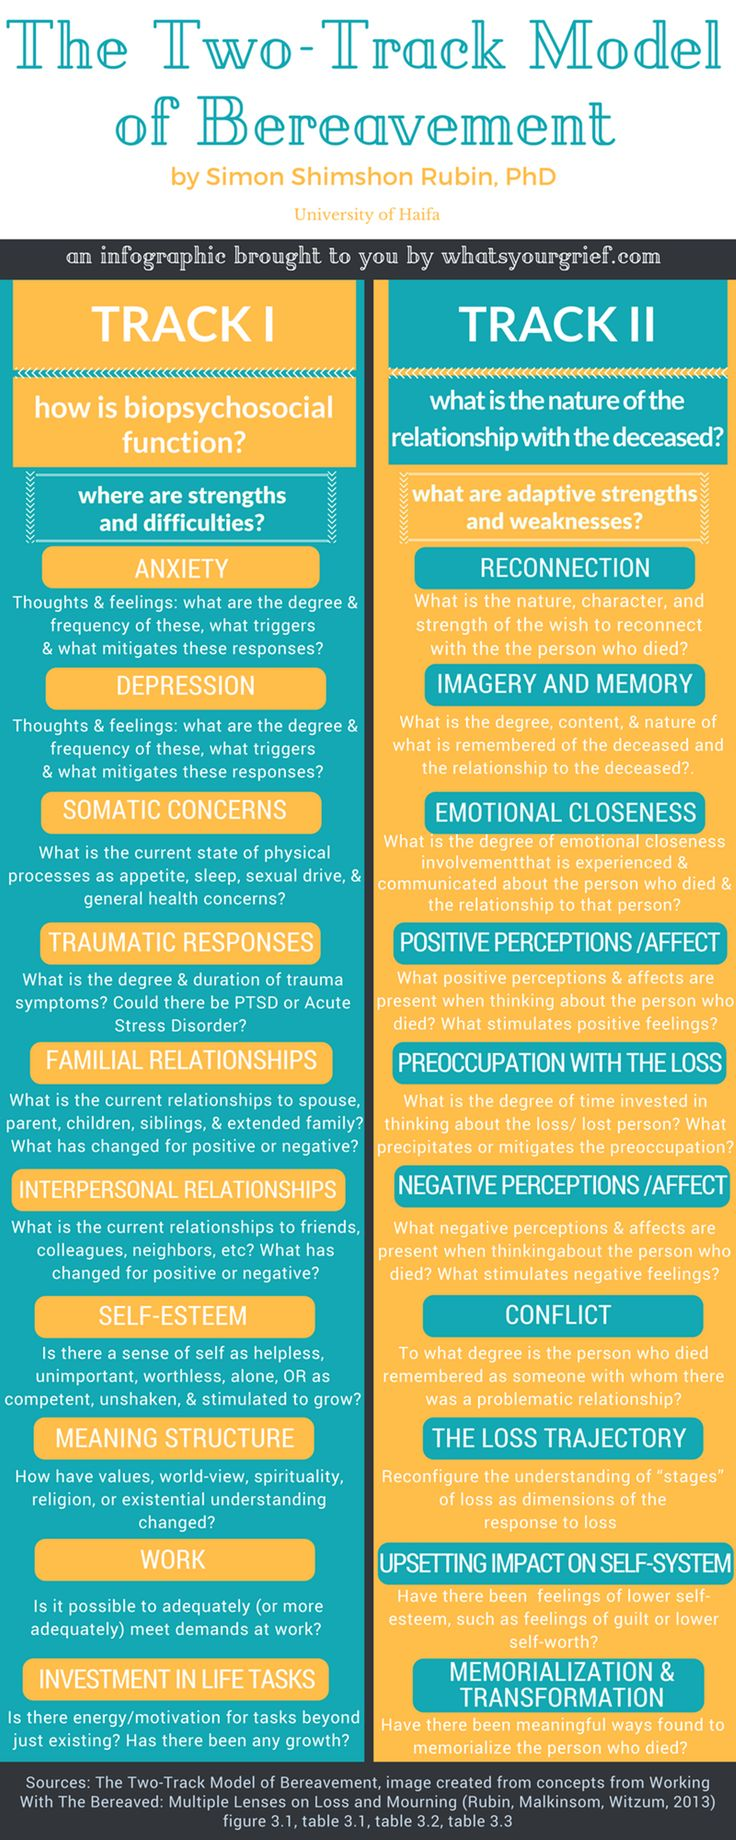 two-track model of bereavement infographic